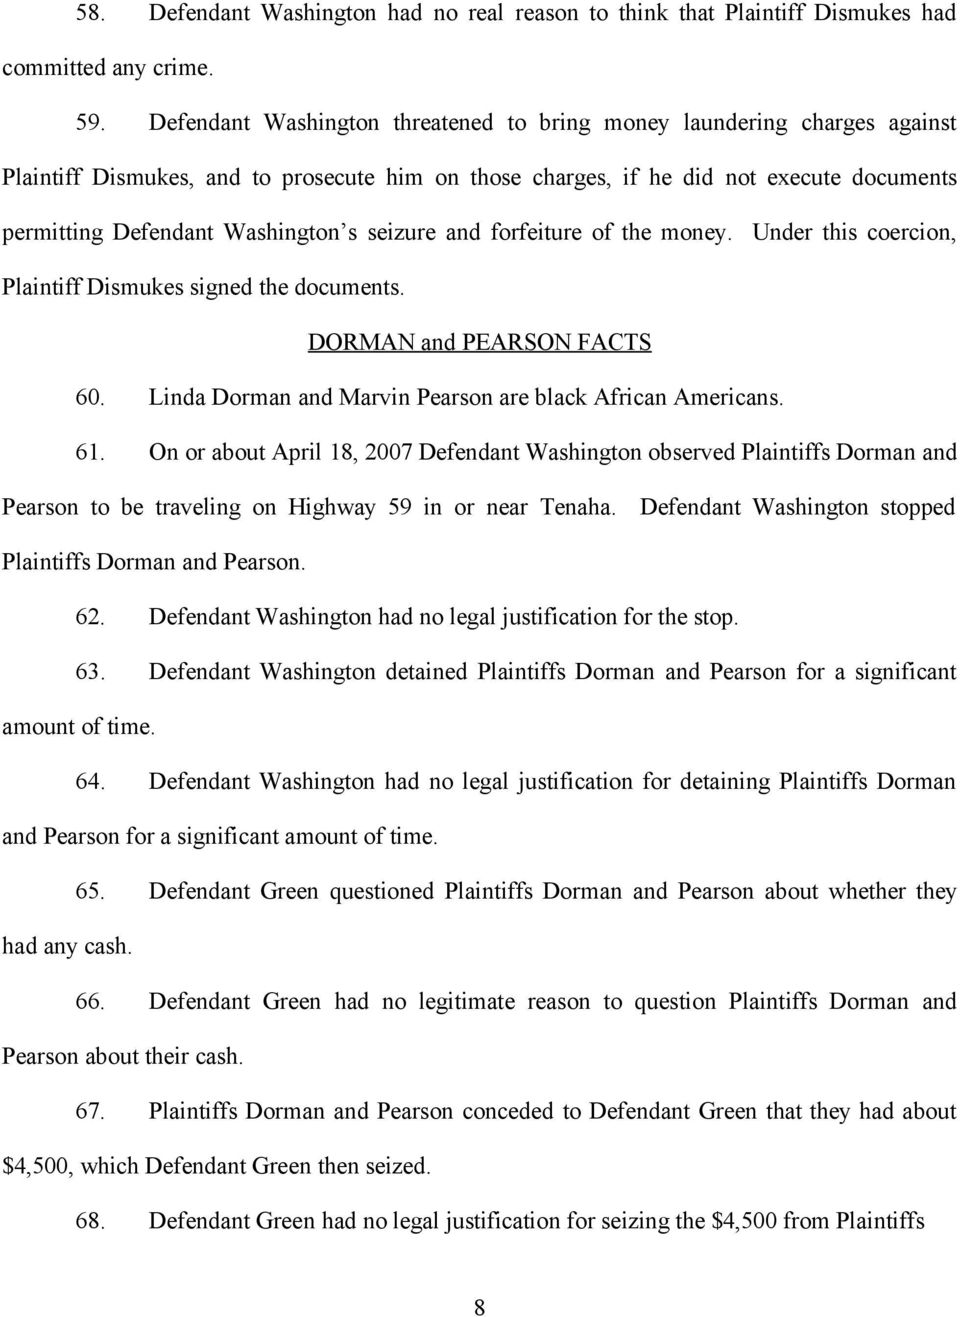 seizure and forfeiture of the money. Under this coercion, Plaintiff Dismukes signed the documents. DORMAN and PEARSON FACTS 60. Linda Dorman and Marvin Pearson are black African Americans. 61.